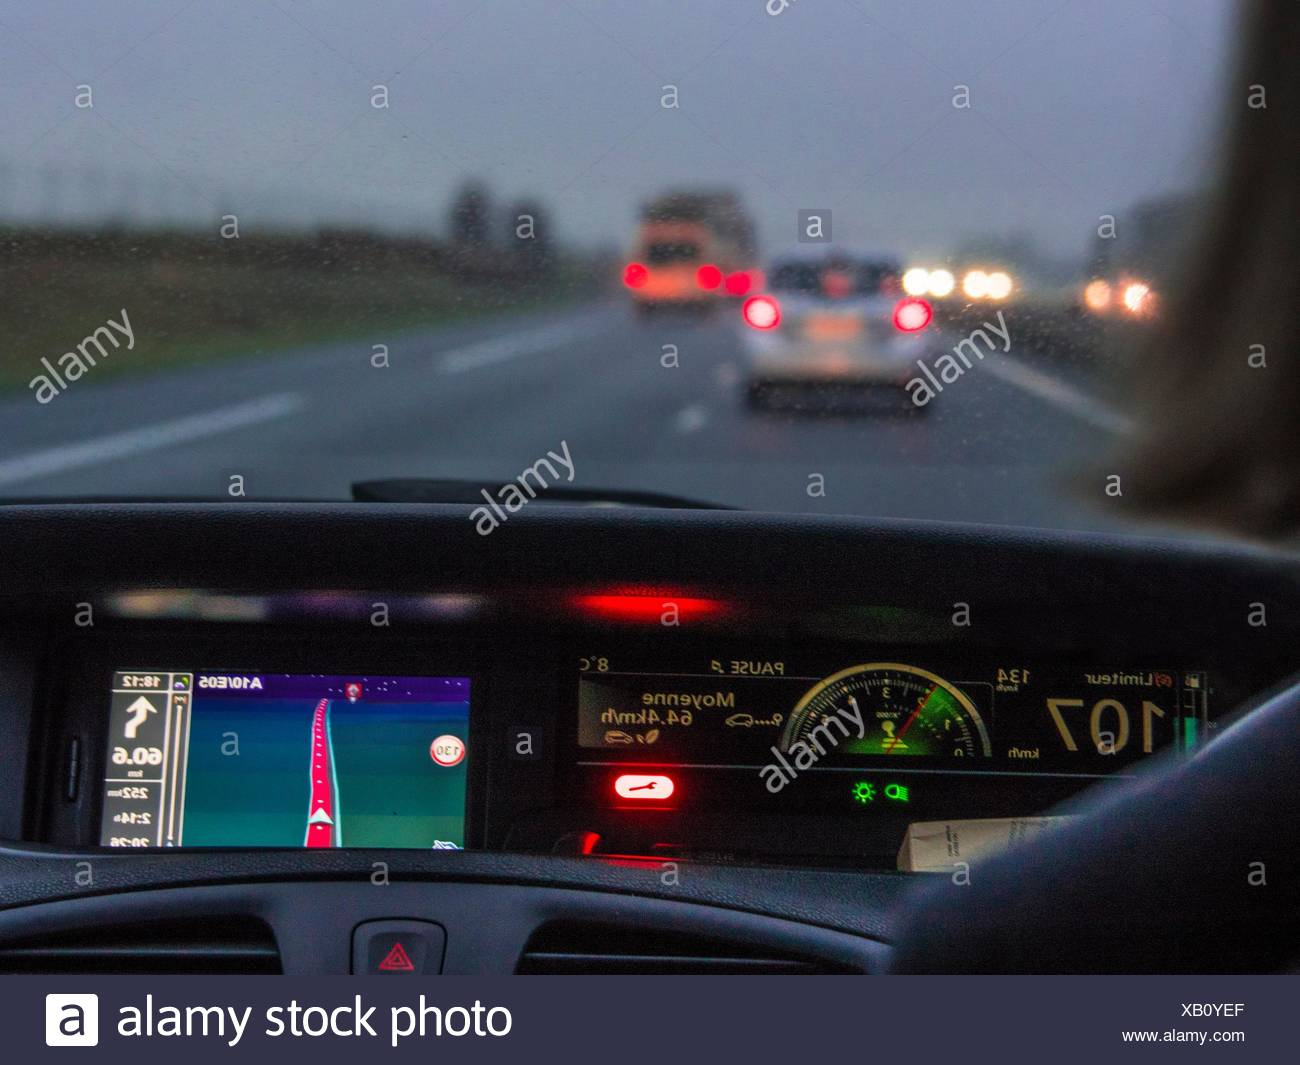 driving on a highway with a GPS. - Stock Image